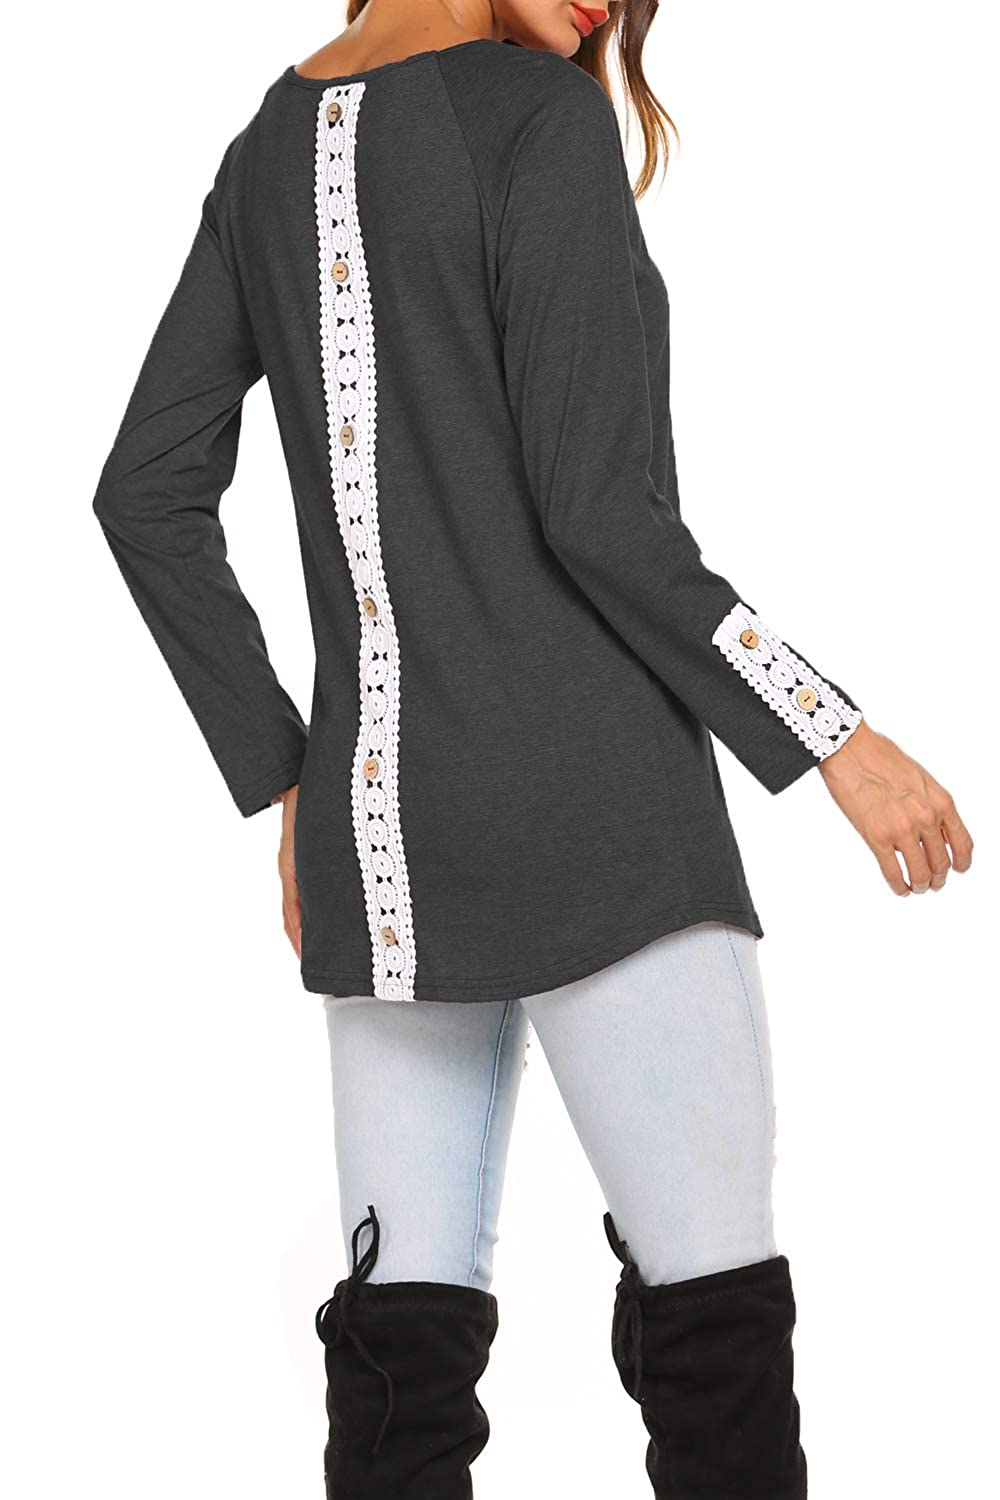 e1418bb6707 Round Neck solid long sleeve blouses with back Buttons lace Inset  design,soft and gorgeous. Four colors are available:Black,Navy Blue,Wine  Red and ...